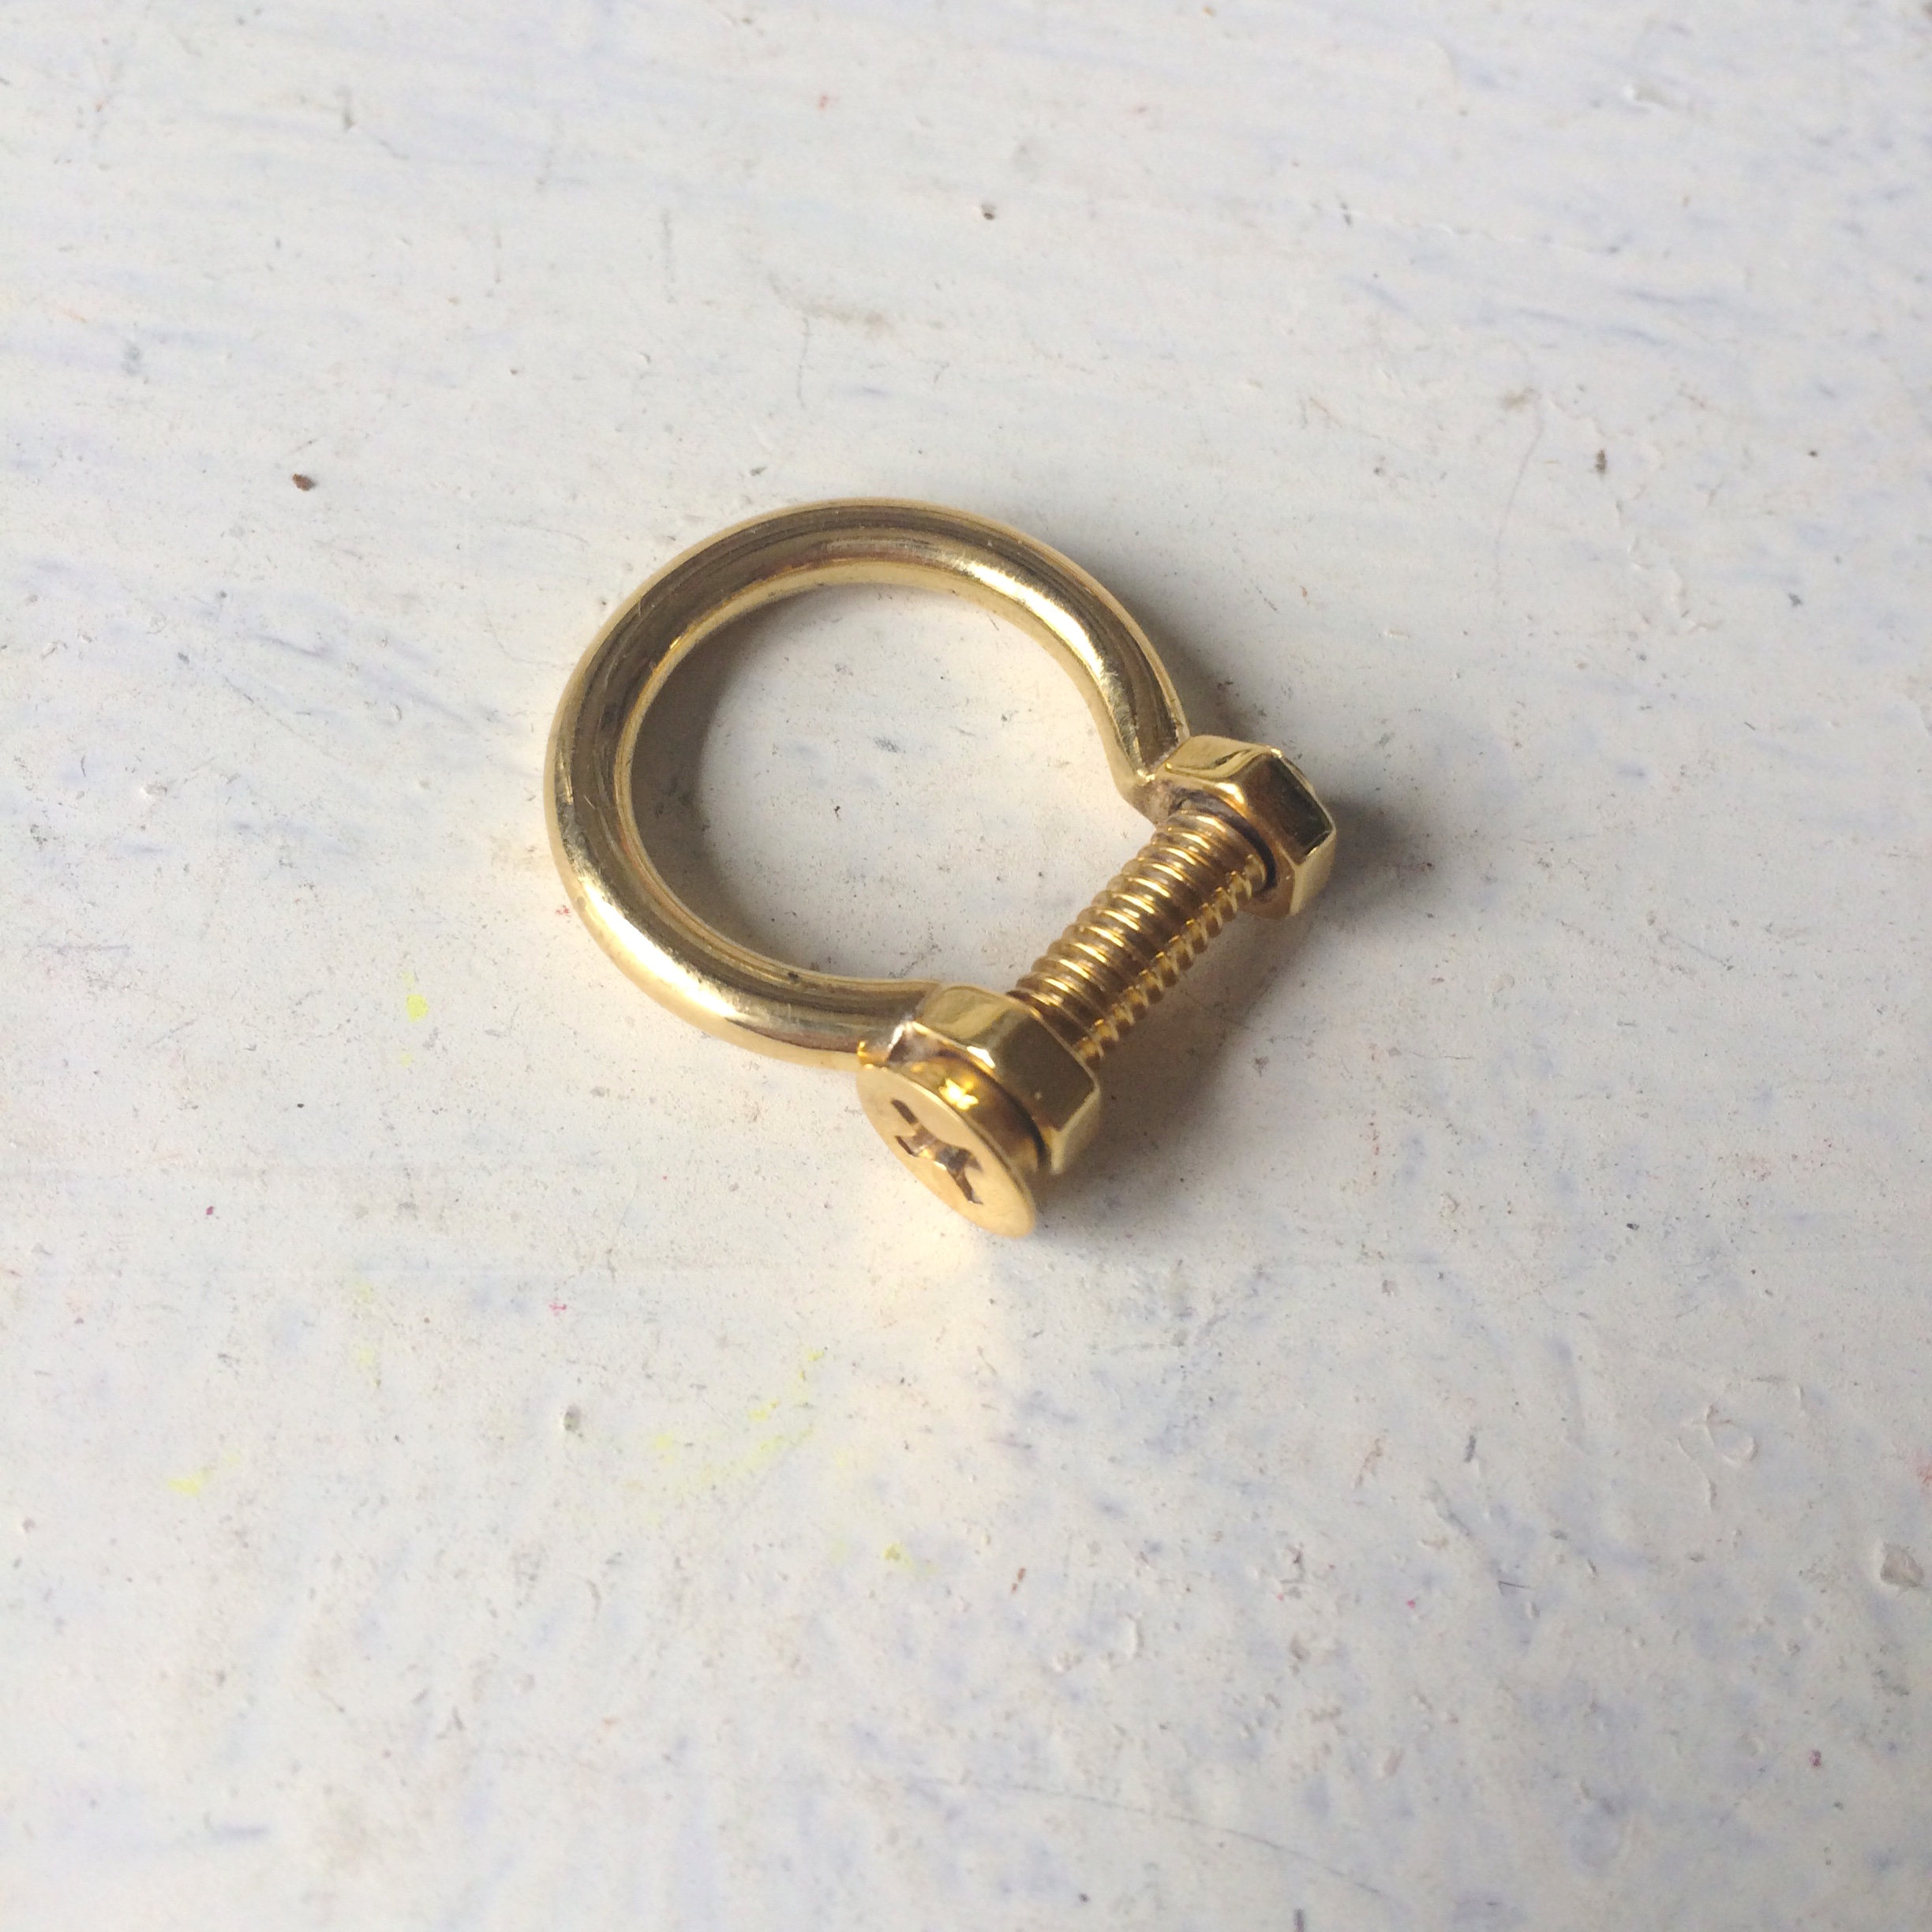 SHACKLE RING FOUND ON KENDALL JENNER.   TEEN VOGUE. 9/14